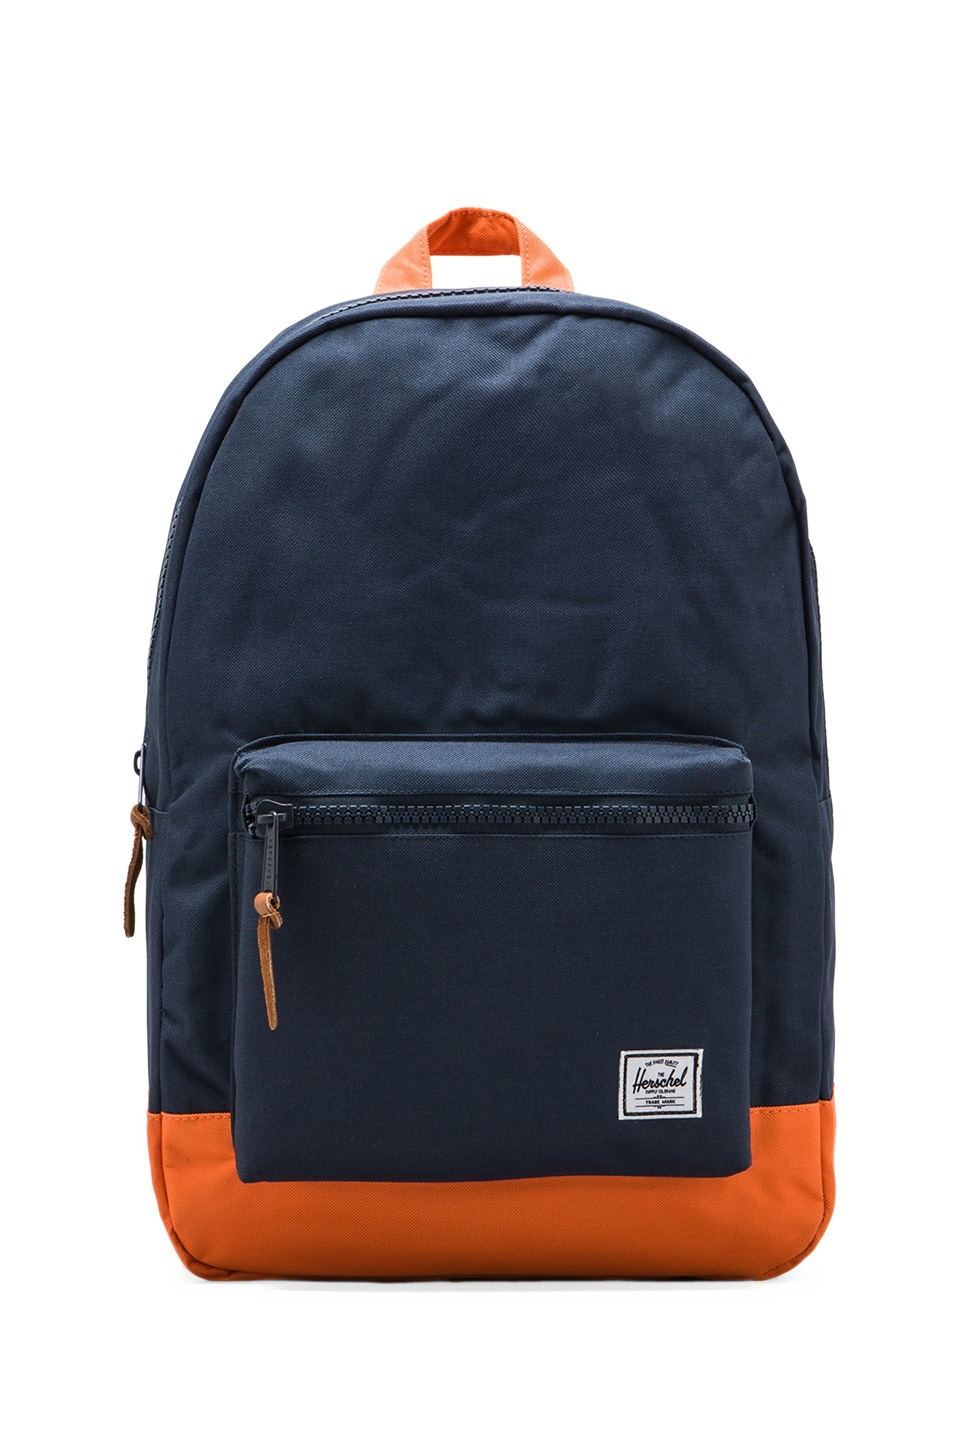 Herschel Supply Co. Settlement Backpack in Navy/Mandarin